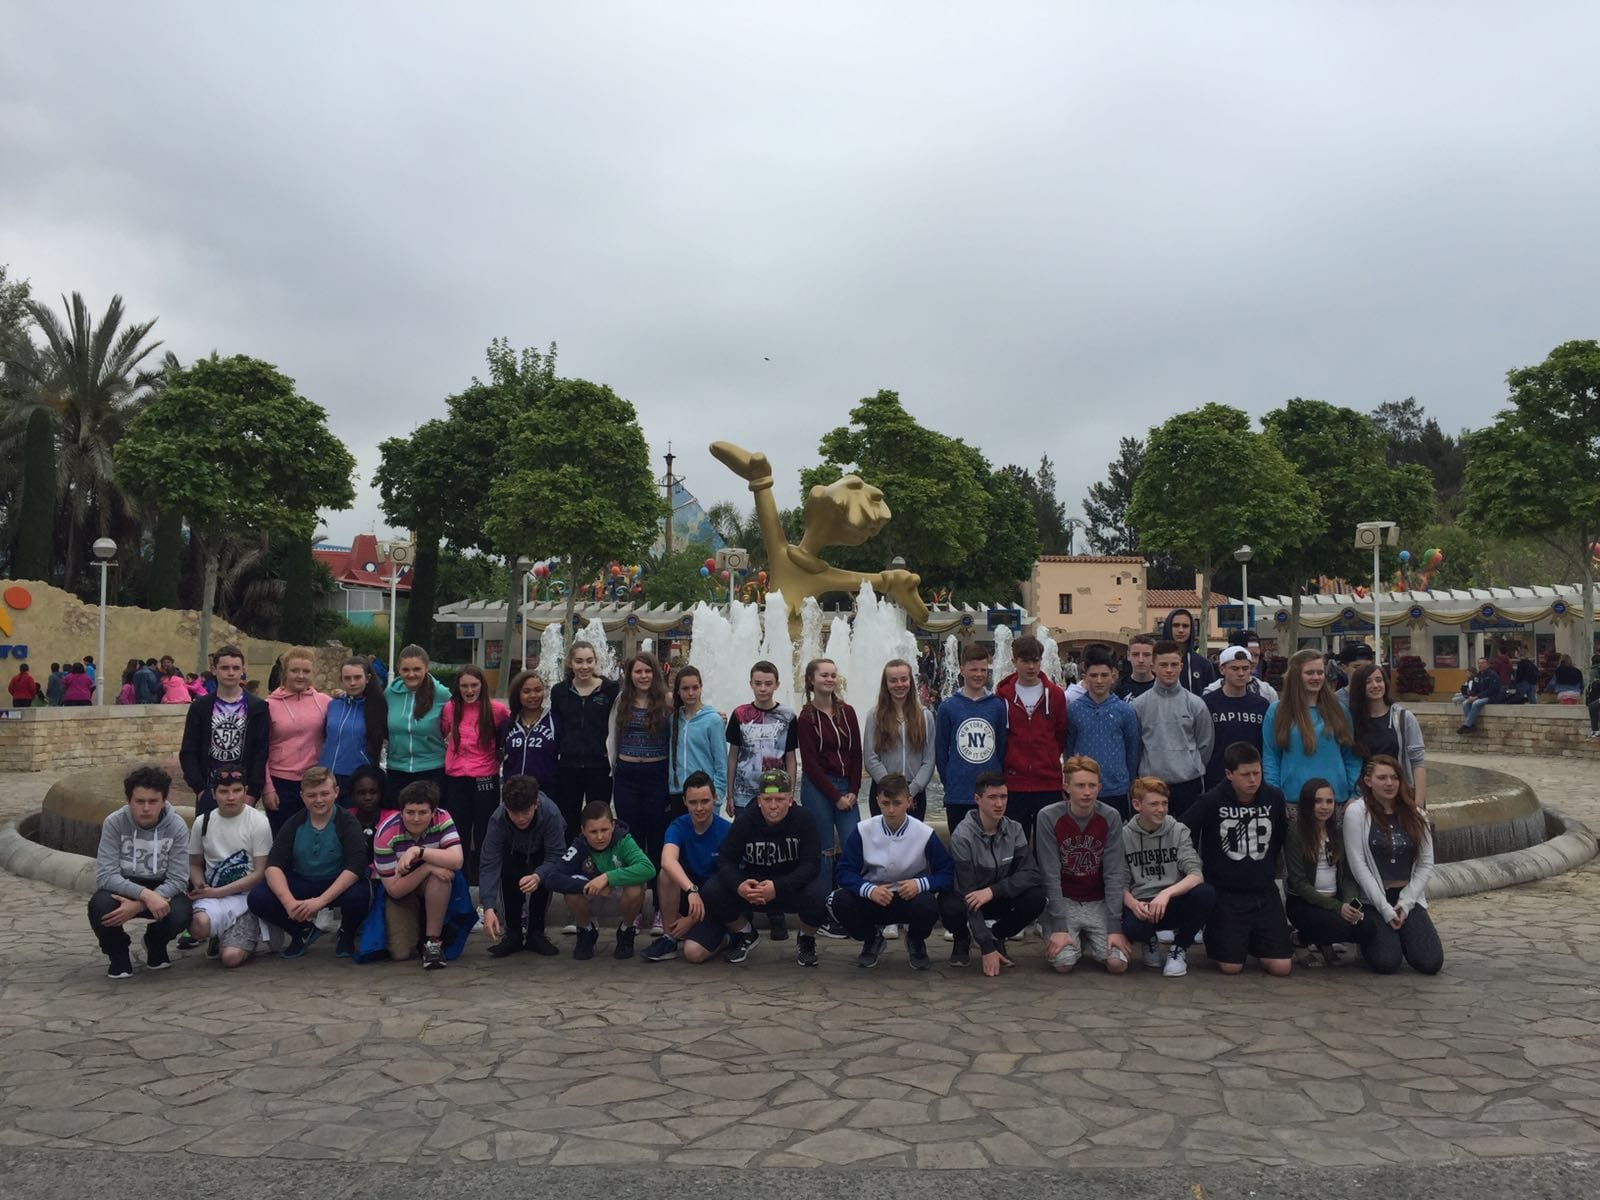 April 2016: Desmond College Second Year's School Tour To Barcelona